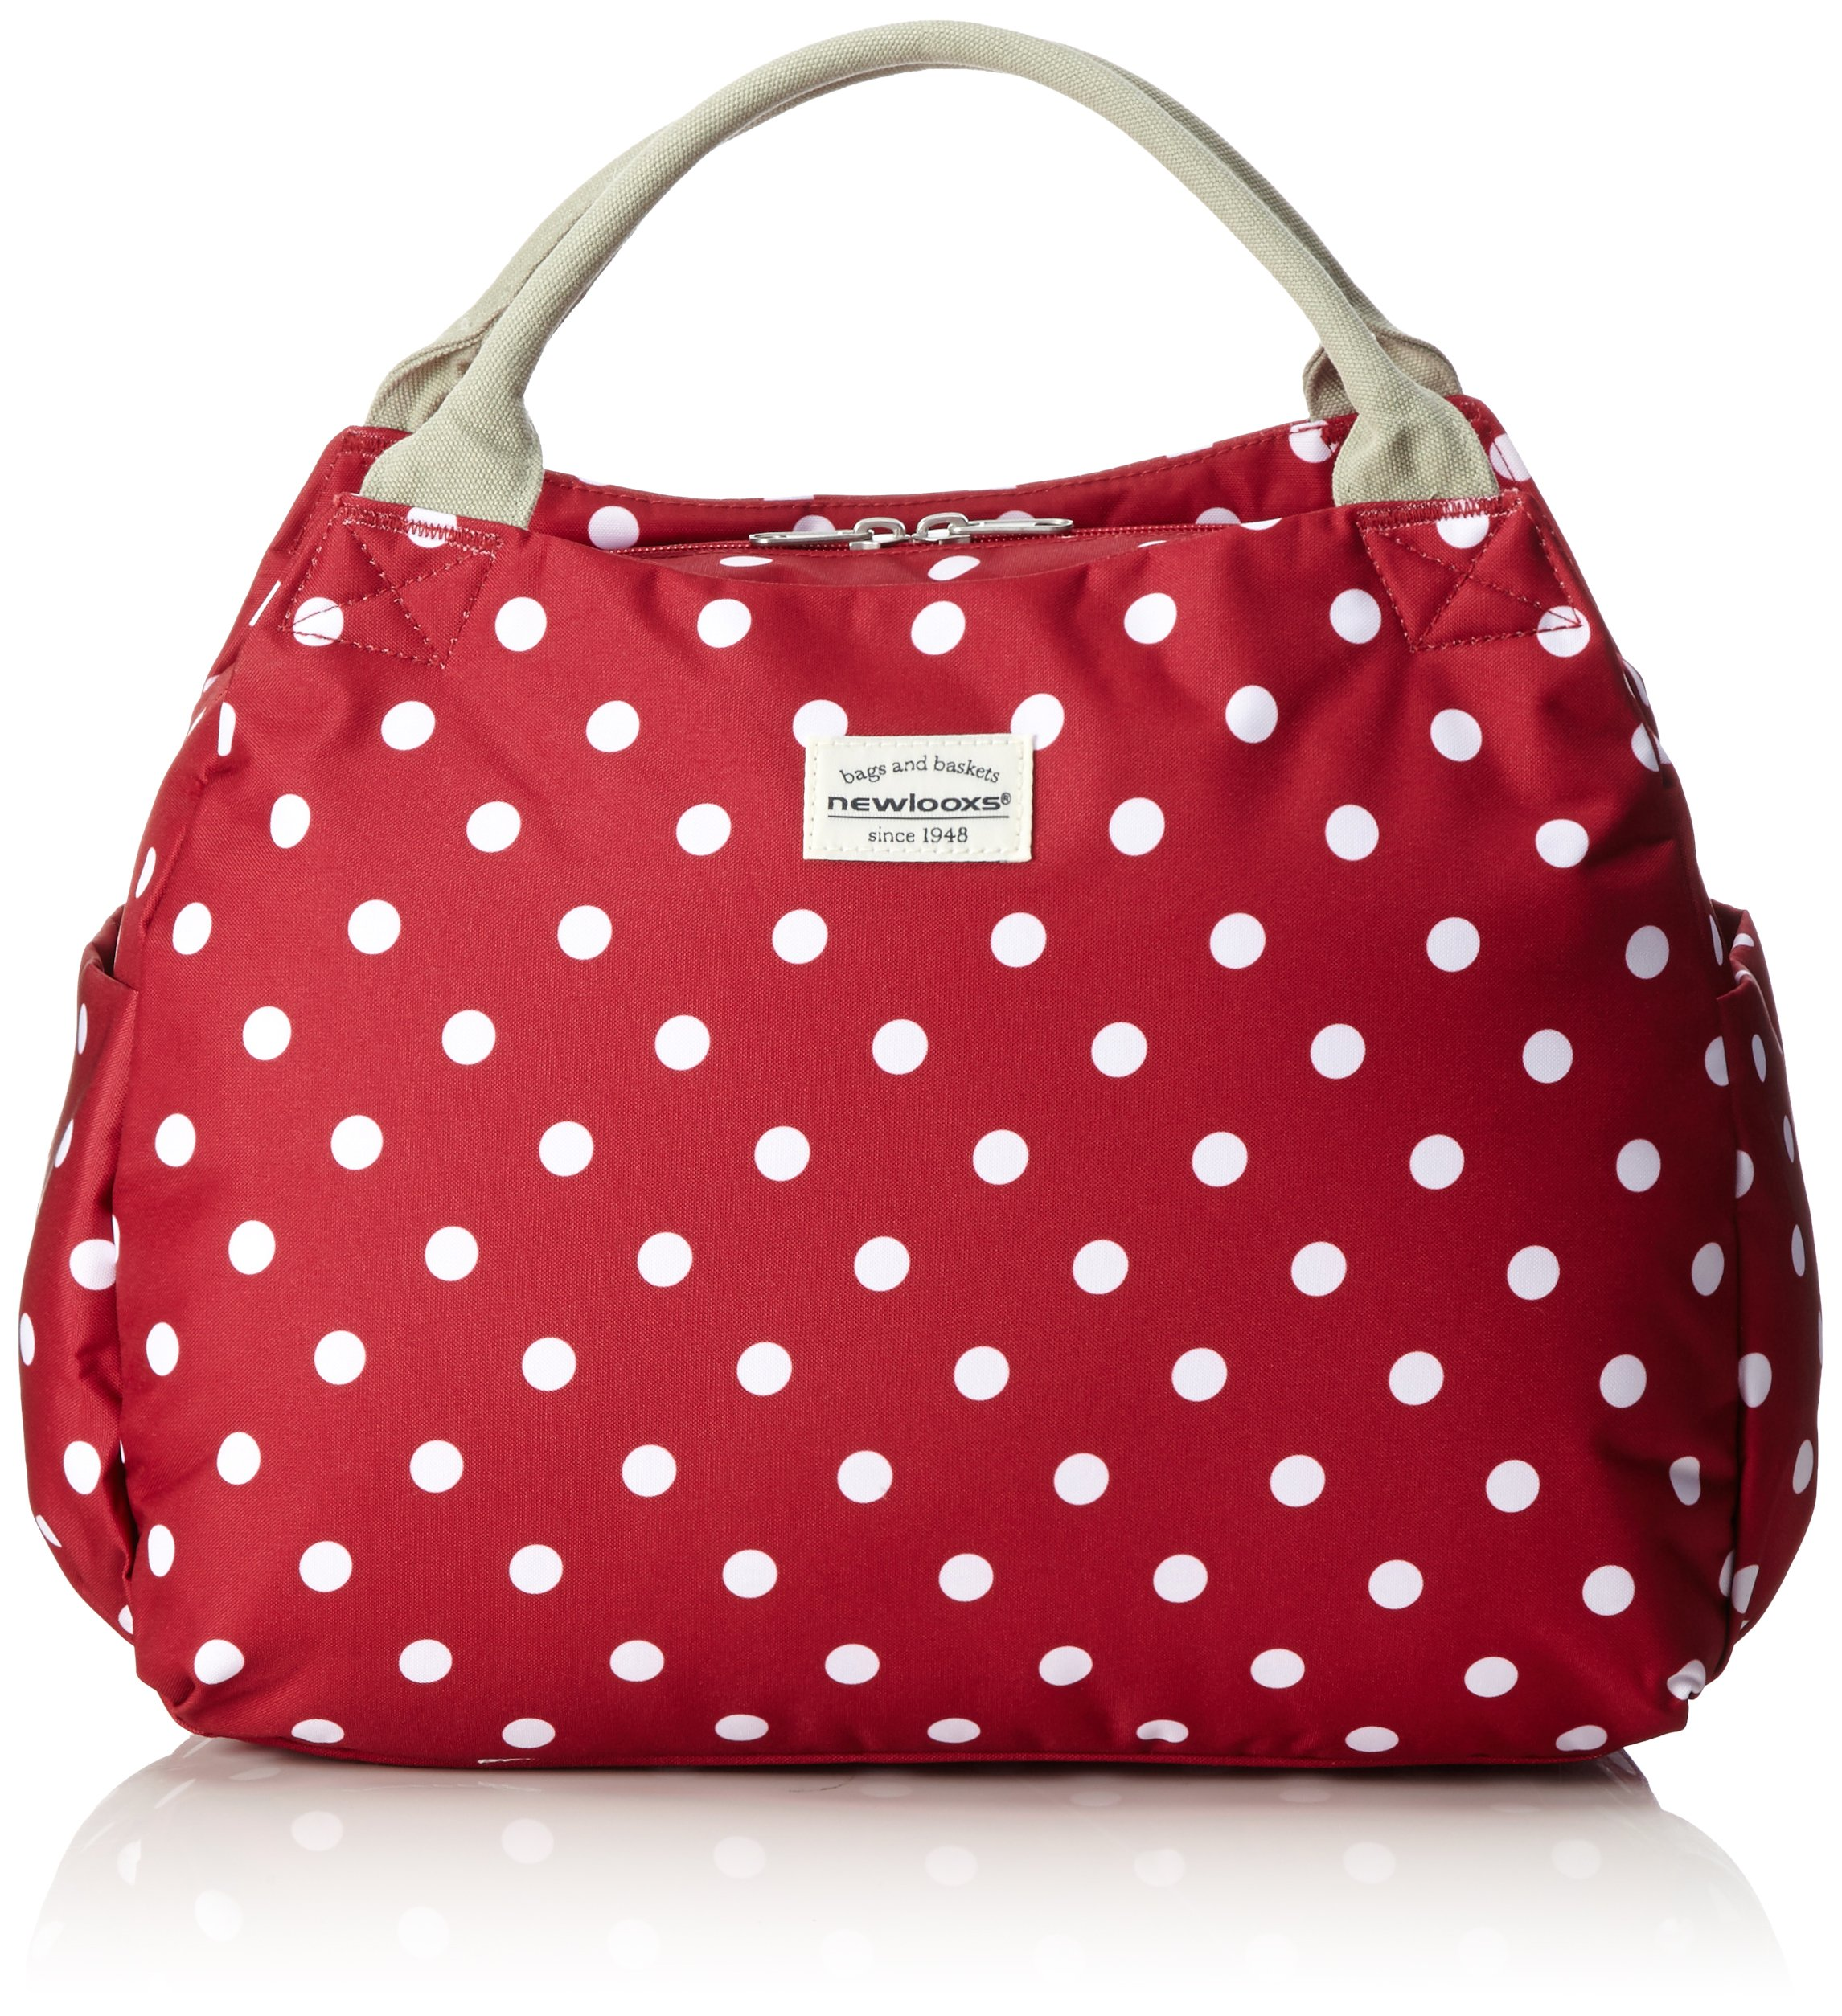 New Looxs Tosca handbag with polka dots, red [Sports] by New (Image #1)